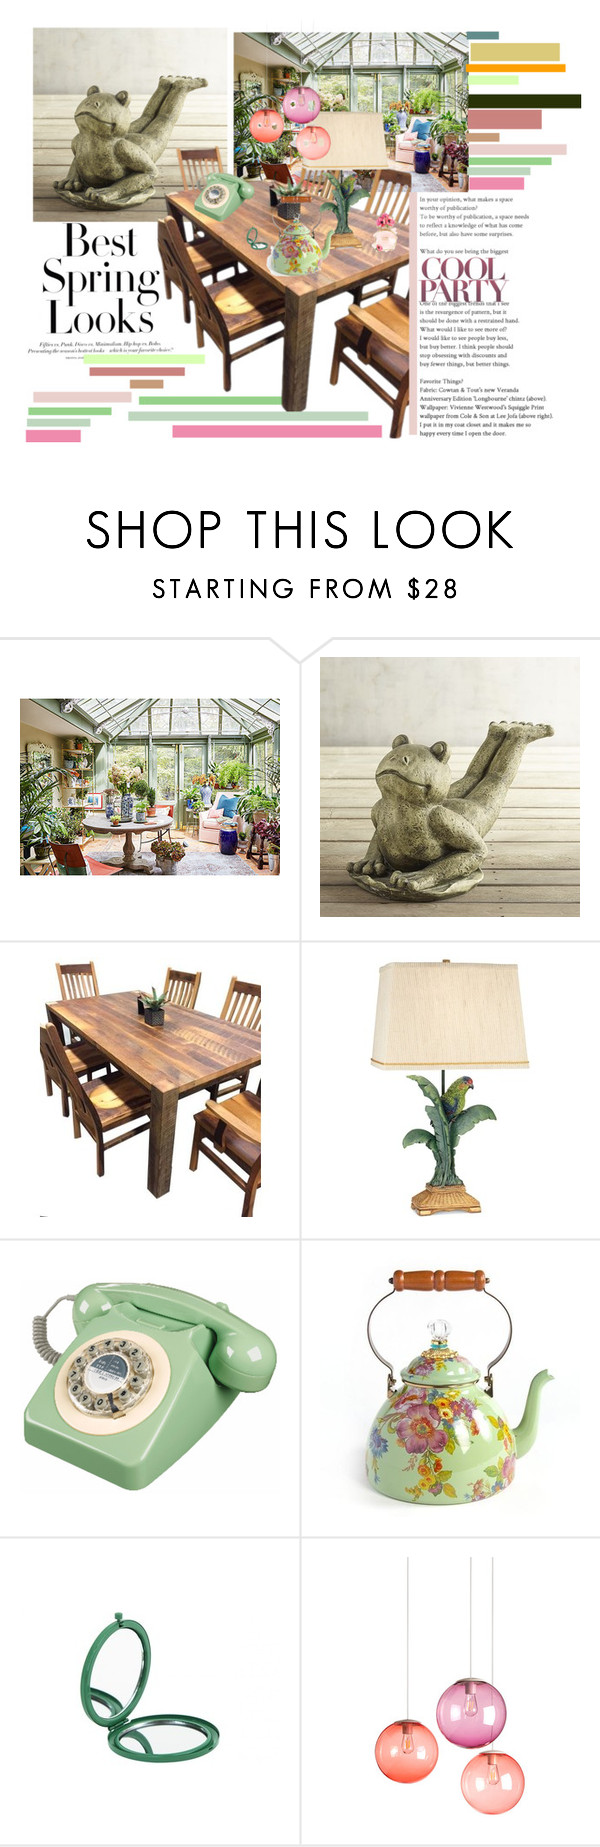 """""""Tea Time"""" by clairabel16 ❤ liked on Polyvore featuring interior, interiors, interior design, home, home decor, interior decorating, H&M, Dana Gibson, Pier 1 Imports and DutchCrafters"""